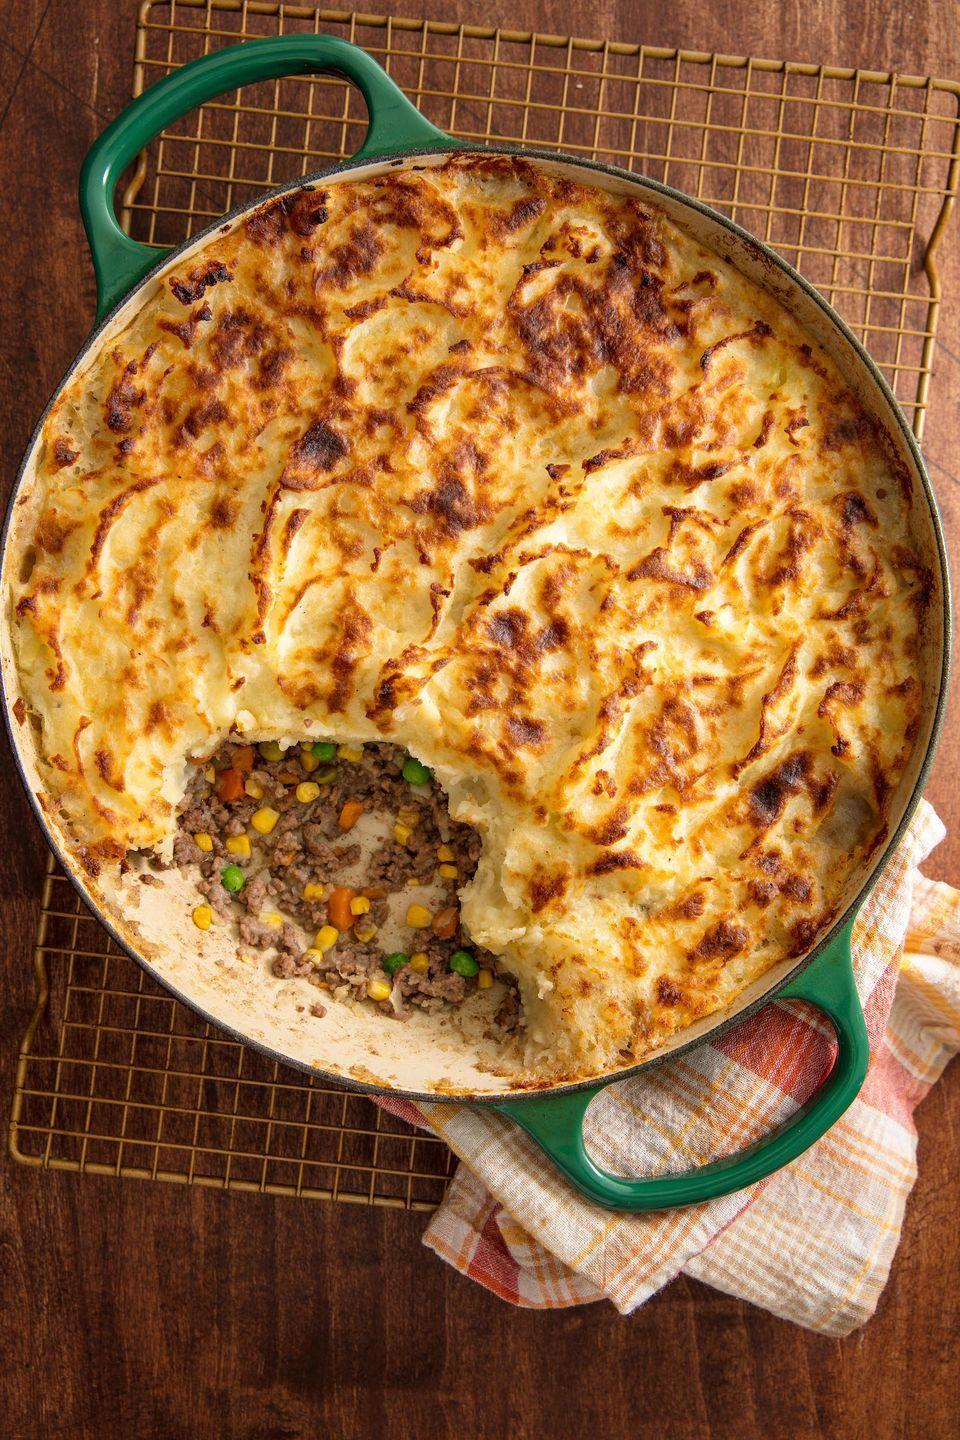 "<p>The ultimate comfort dish.</p><p>Get the recipe from <a href=""https://www.delish.com/cooking/recipe-ideas/recipes/a57949/easy-shepherds-pie-recipe/"" rel=""nofollow noopener"" target=""_blank"" data-ylk=""slk:Delish"" class=""link rapid-noclick-resp"">Delish</a>.</p>"